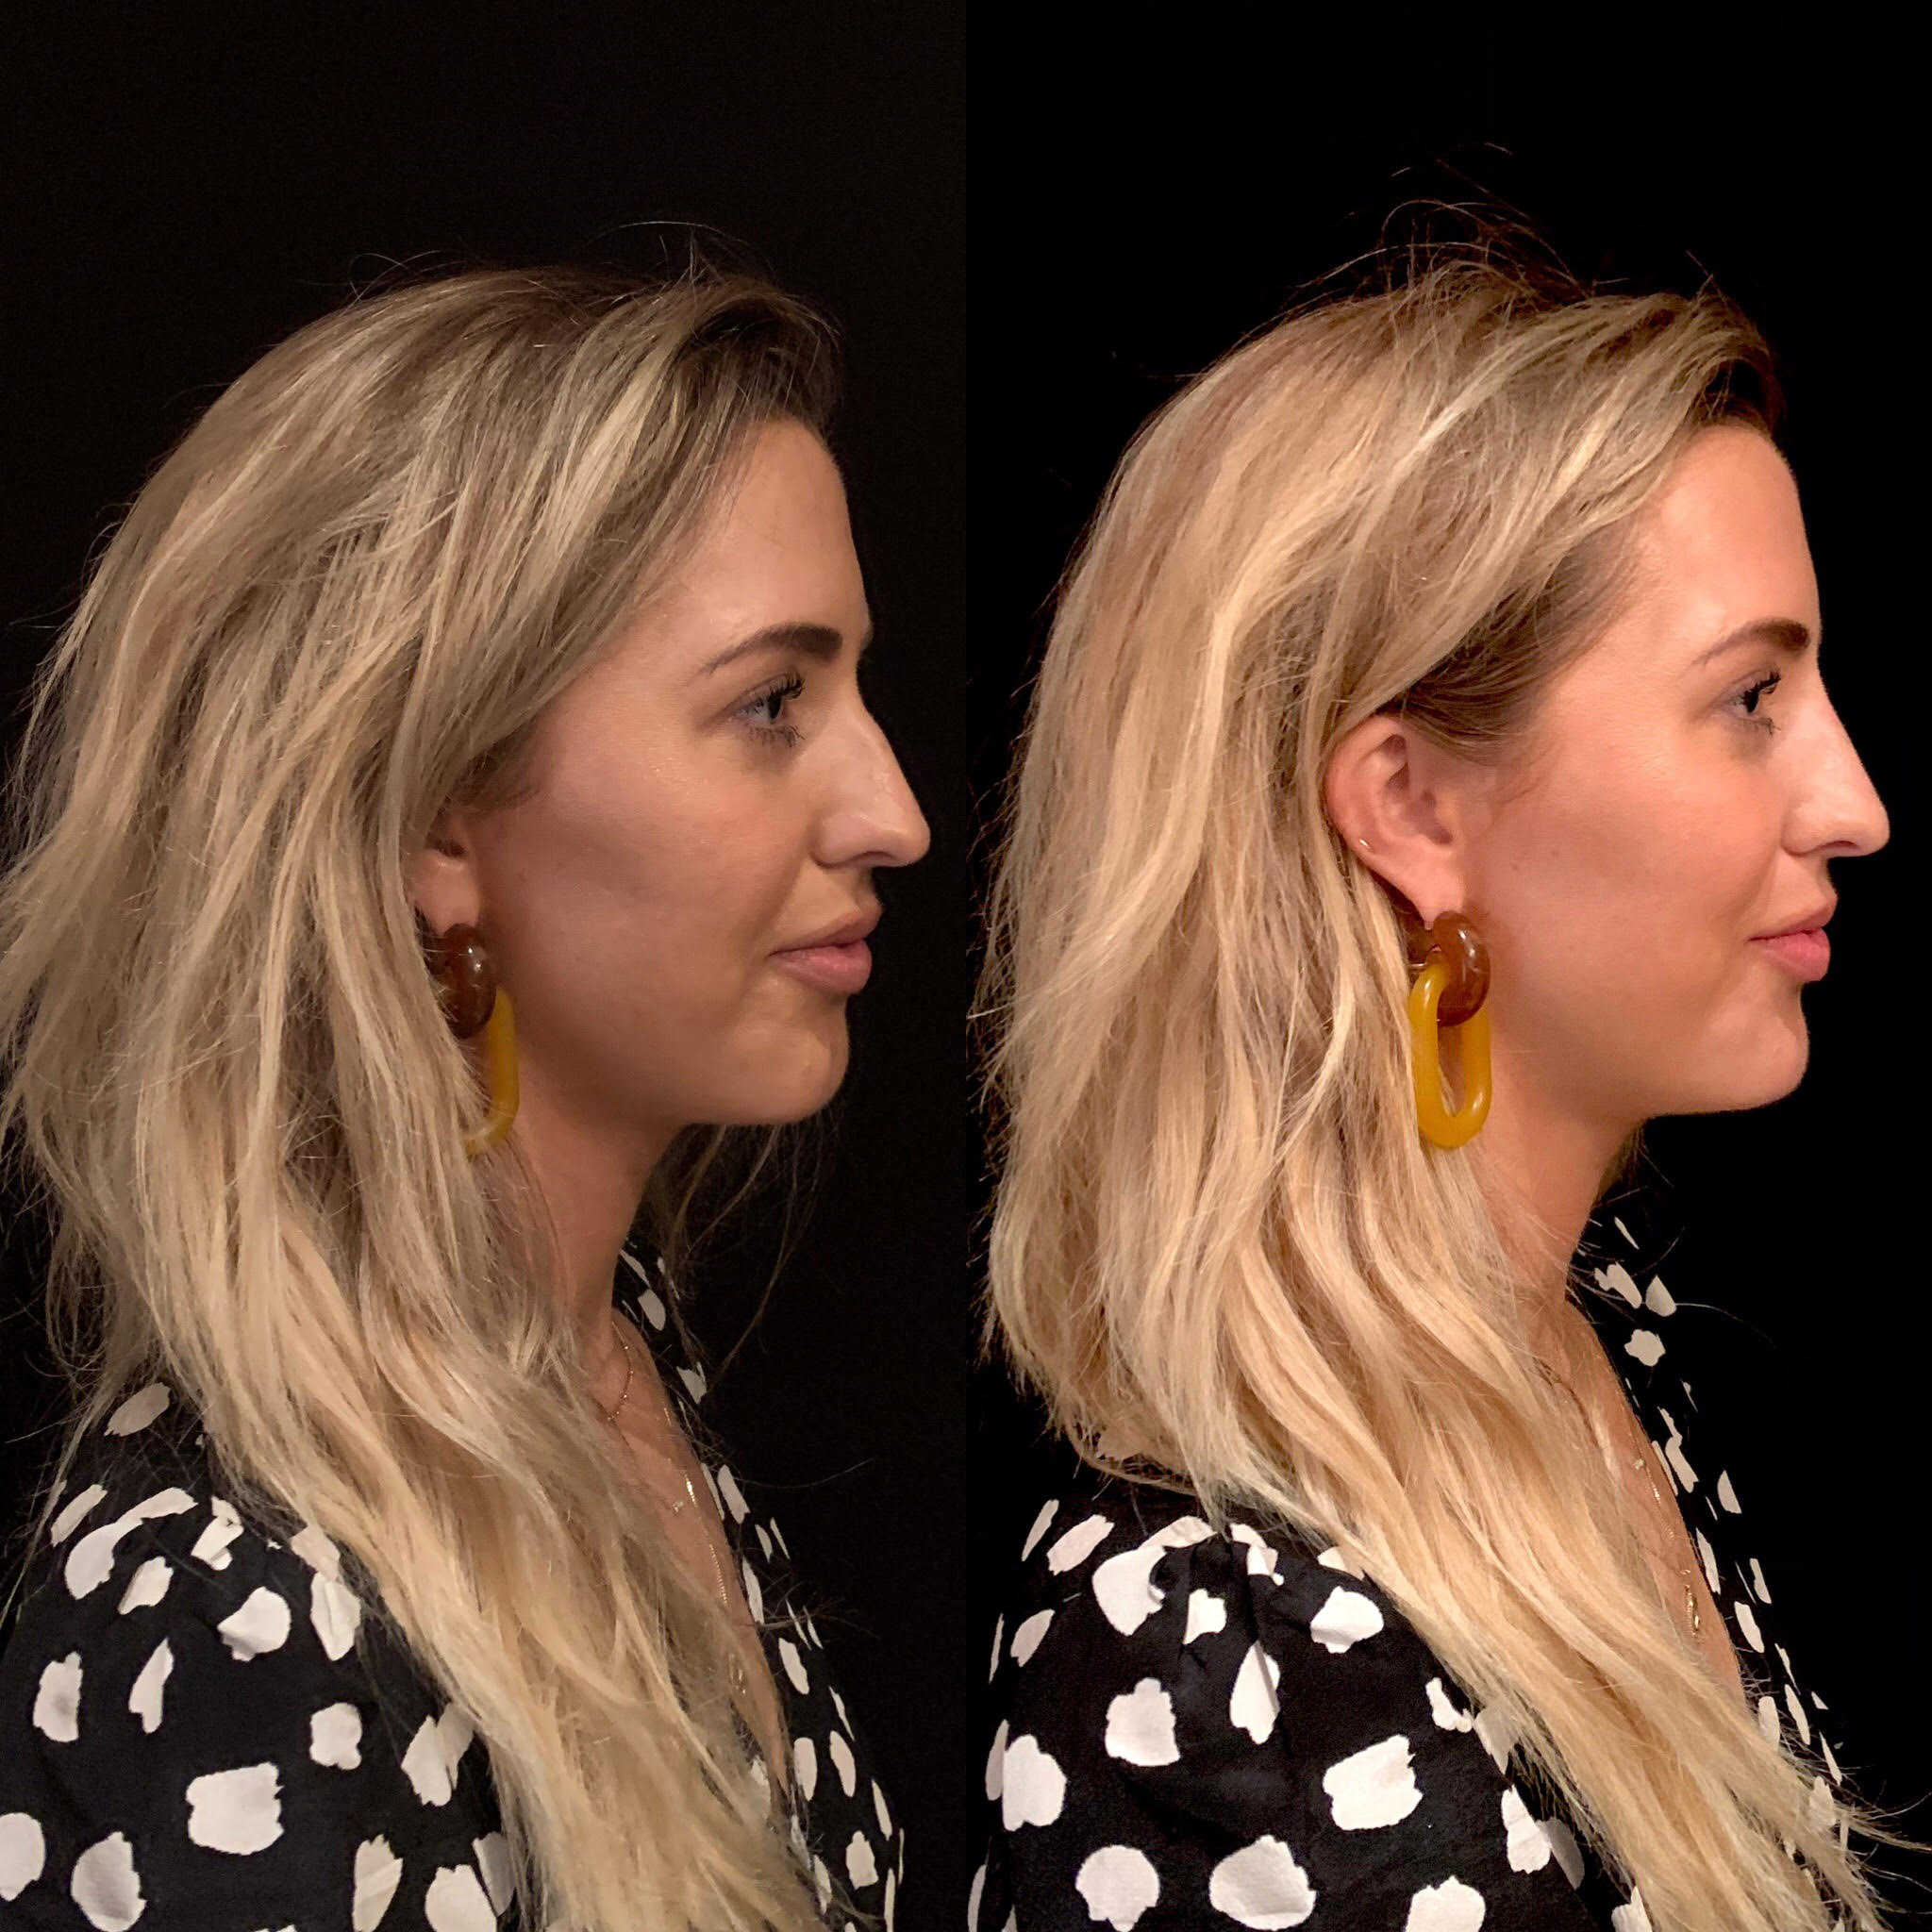 This is the Before and After for our model who received a nonsurgical rhinoplasty and chin augmentation. Directly after the procedure we are able to see instant results.